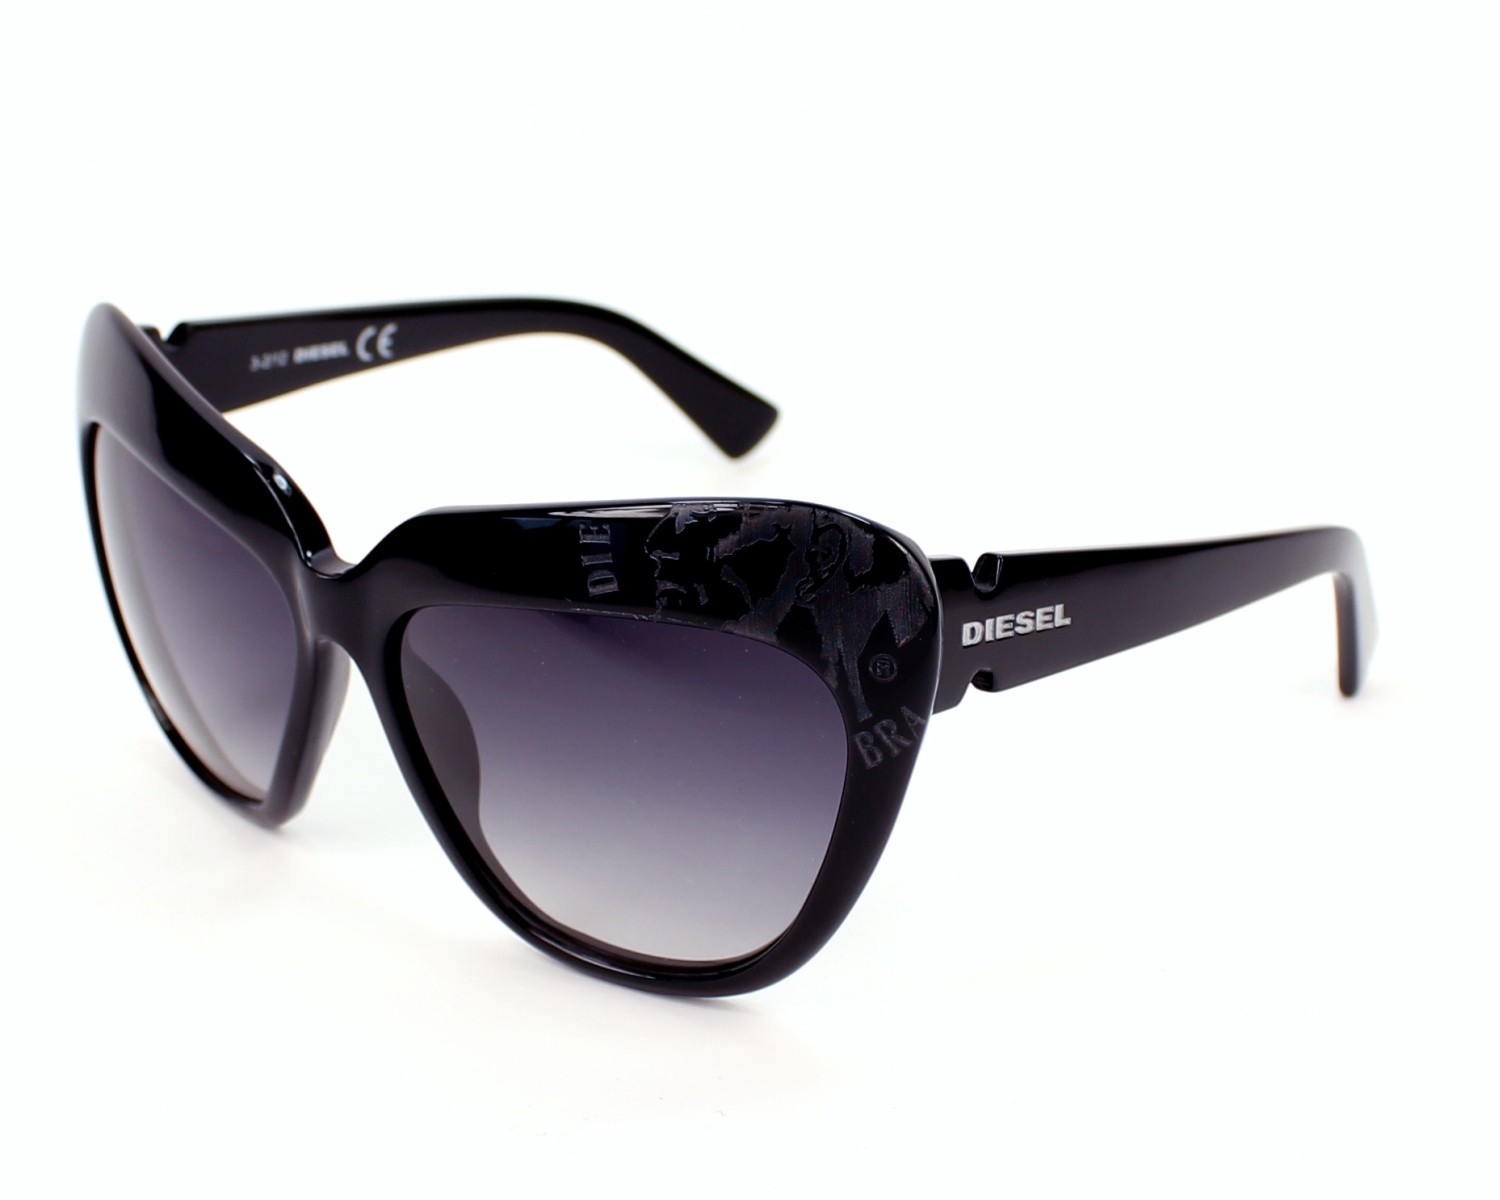 589bced57f5 Sunglasses Diesel DL-0047-S 01A - Black profile view